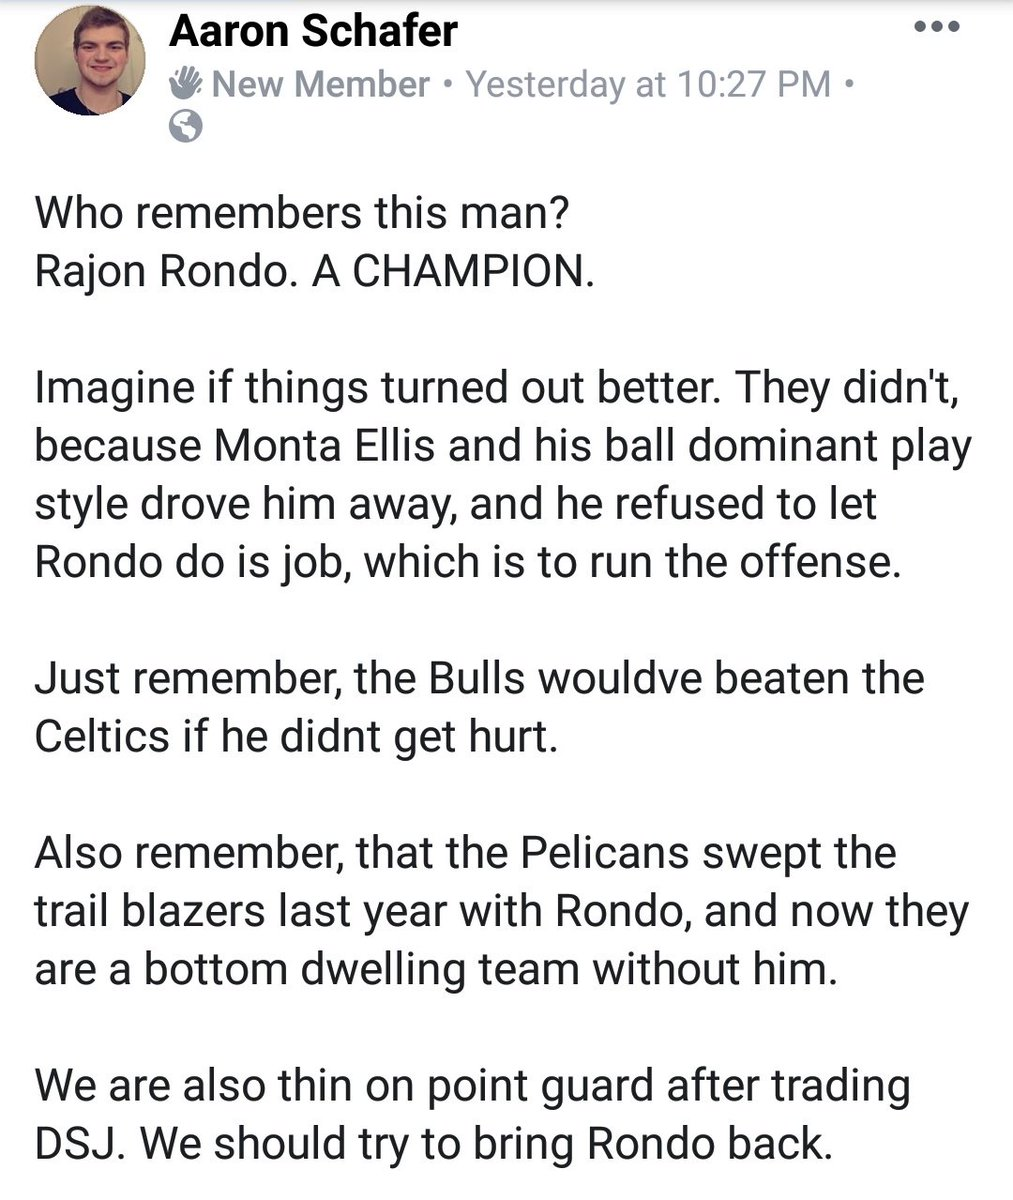 Dallas should try and bring Rondo back #MFFL